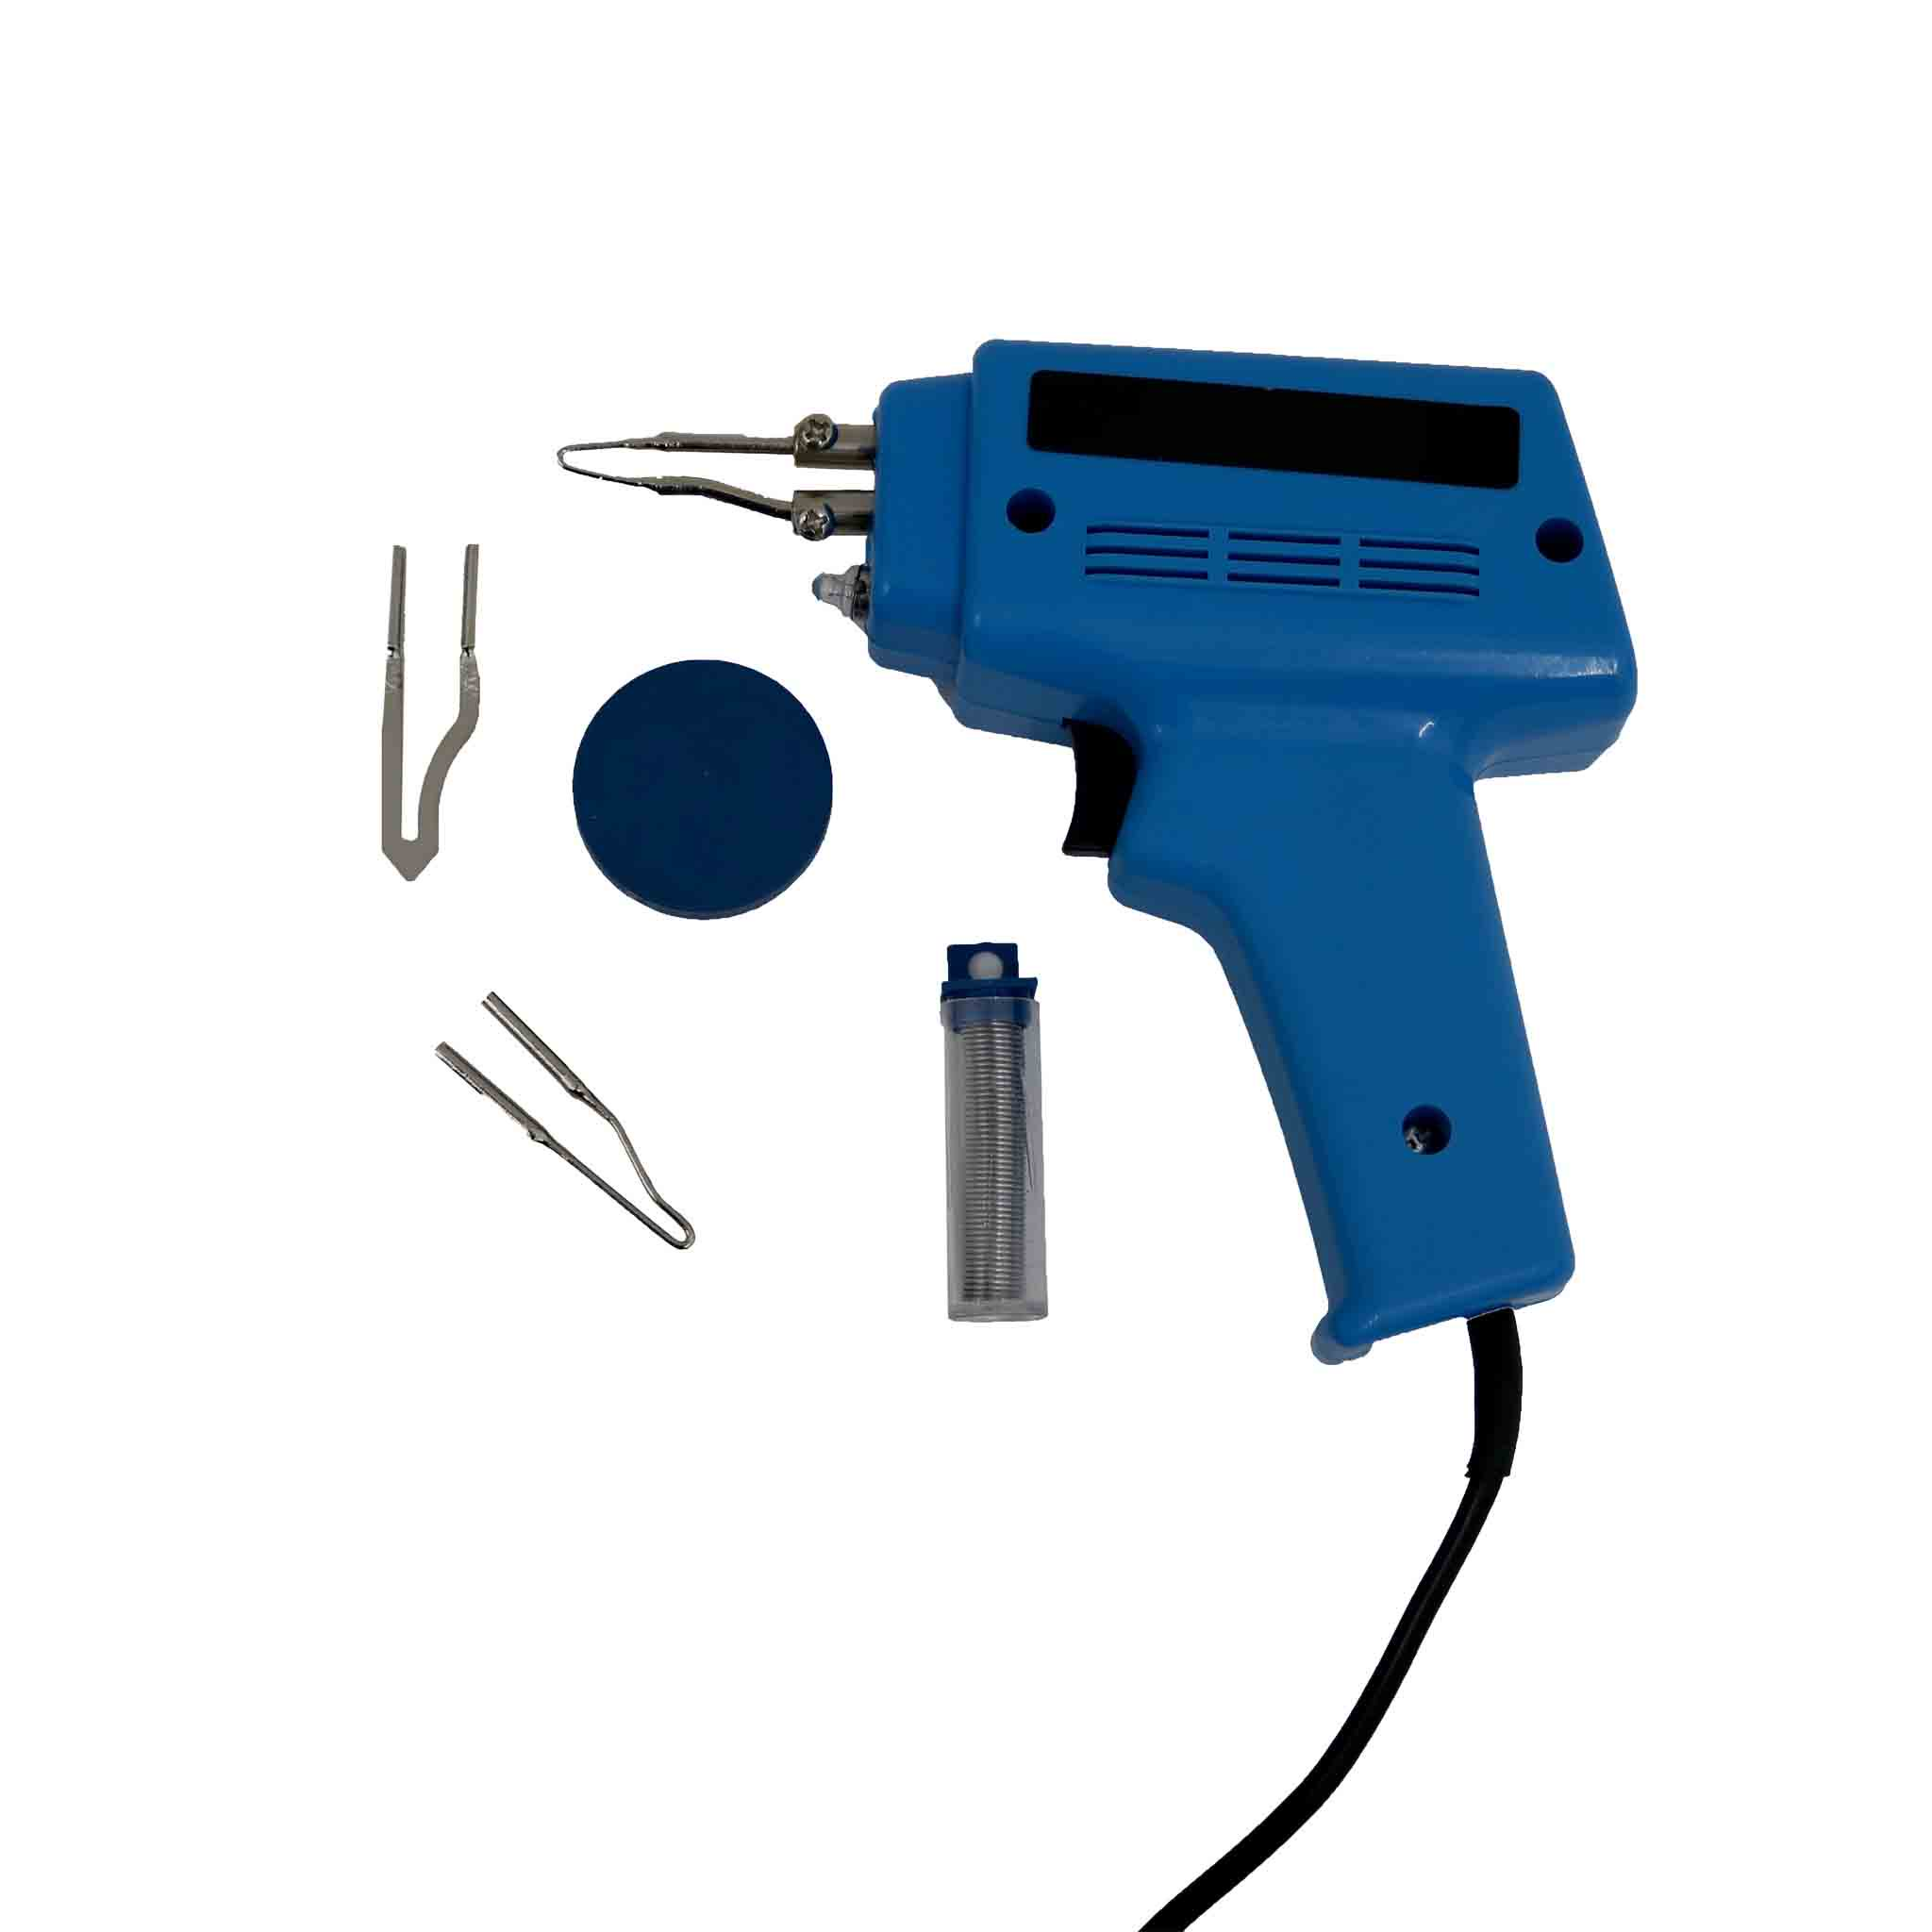 100W Electric Soldering Gun Iron Kit with 3 Tips, Solder & Flux